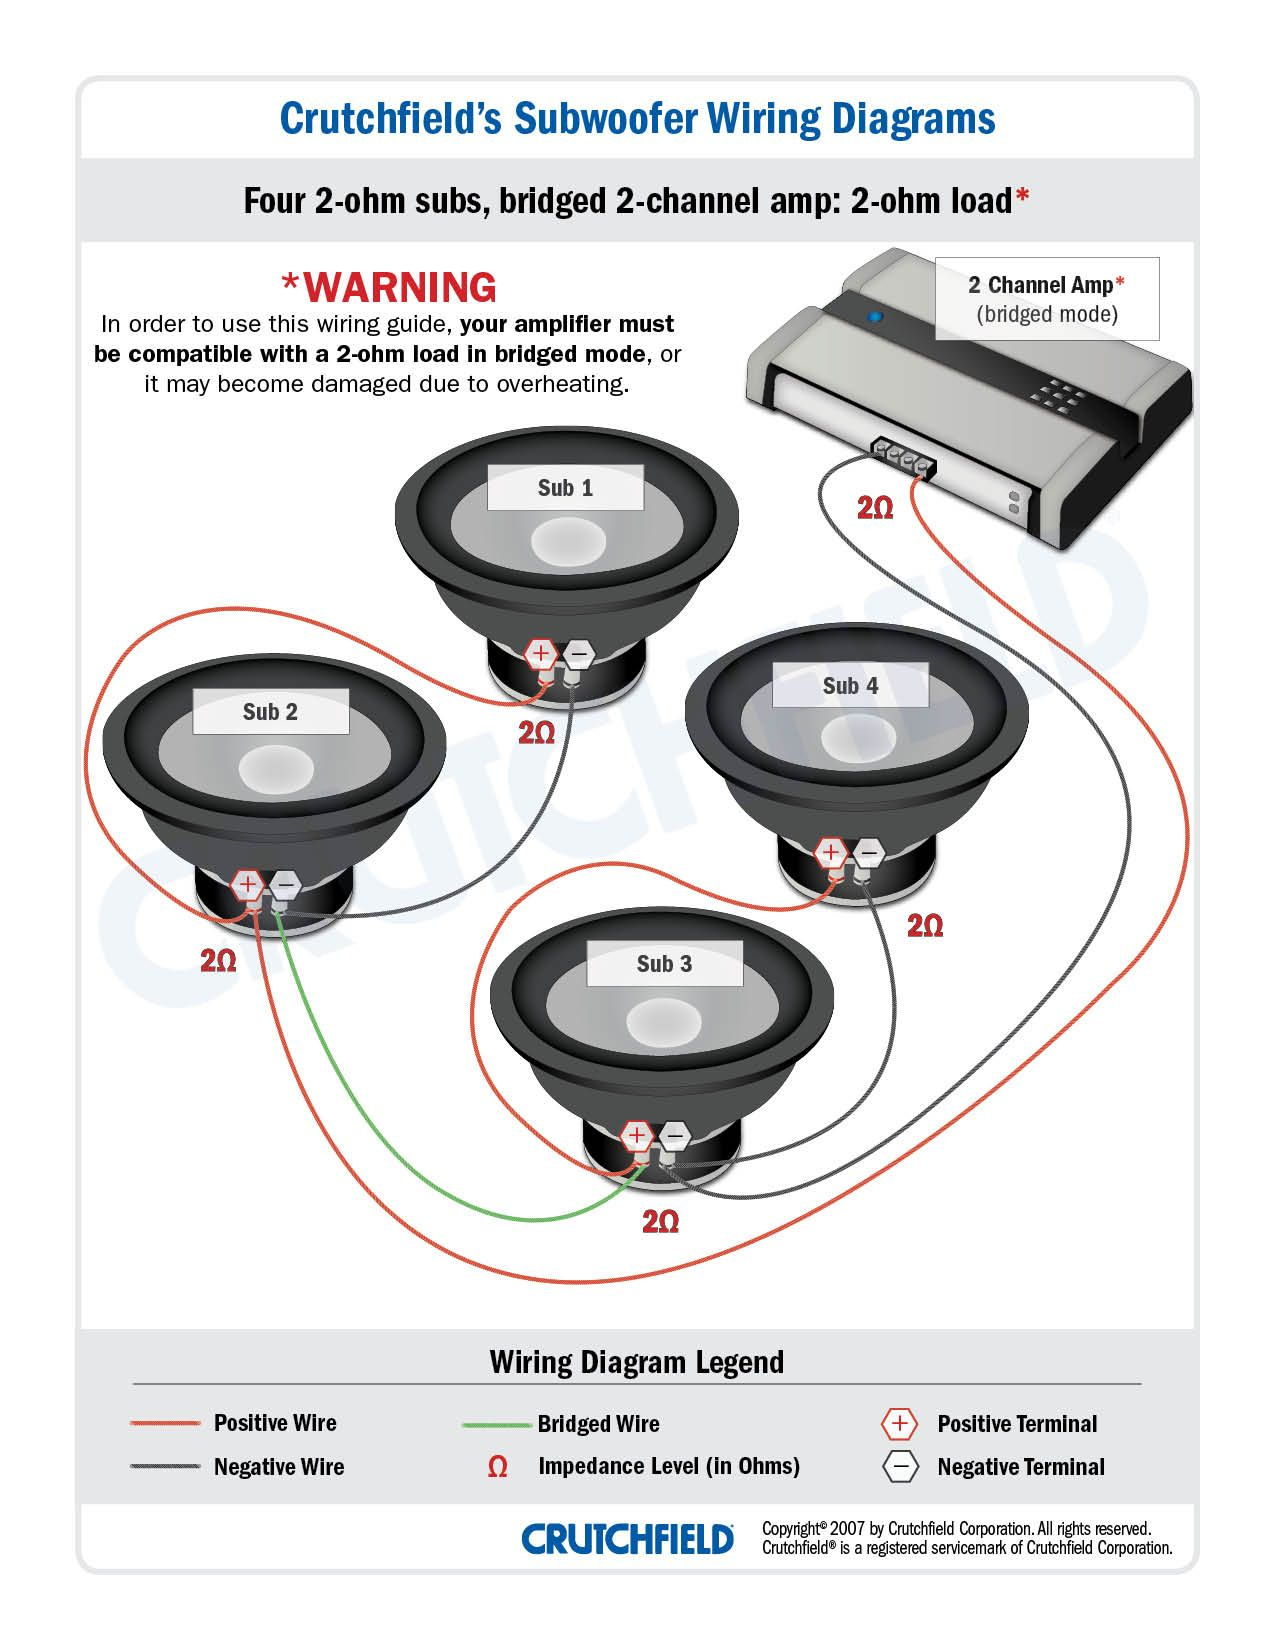 Top 10 Subwoofer Wiring Diagram Free Download 4 Svc 2 Ohm 2 Ch Low - 2 Ohm Wiring Diagram